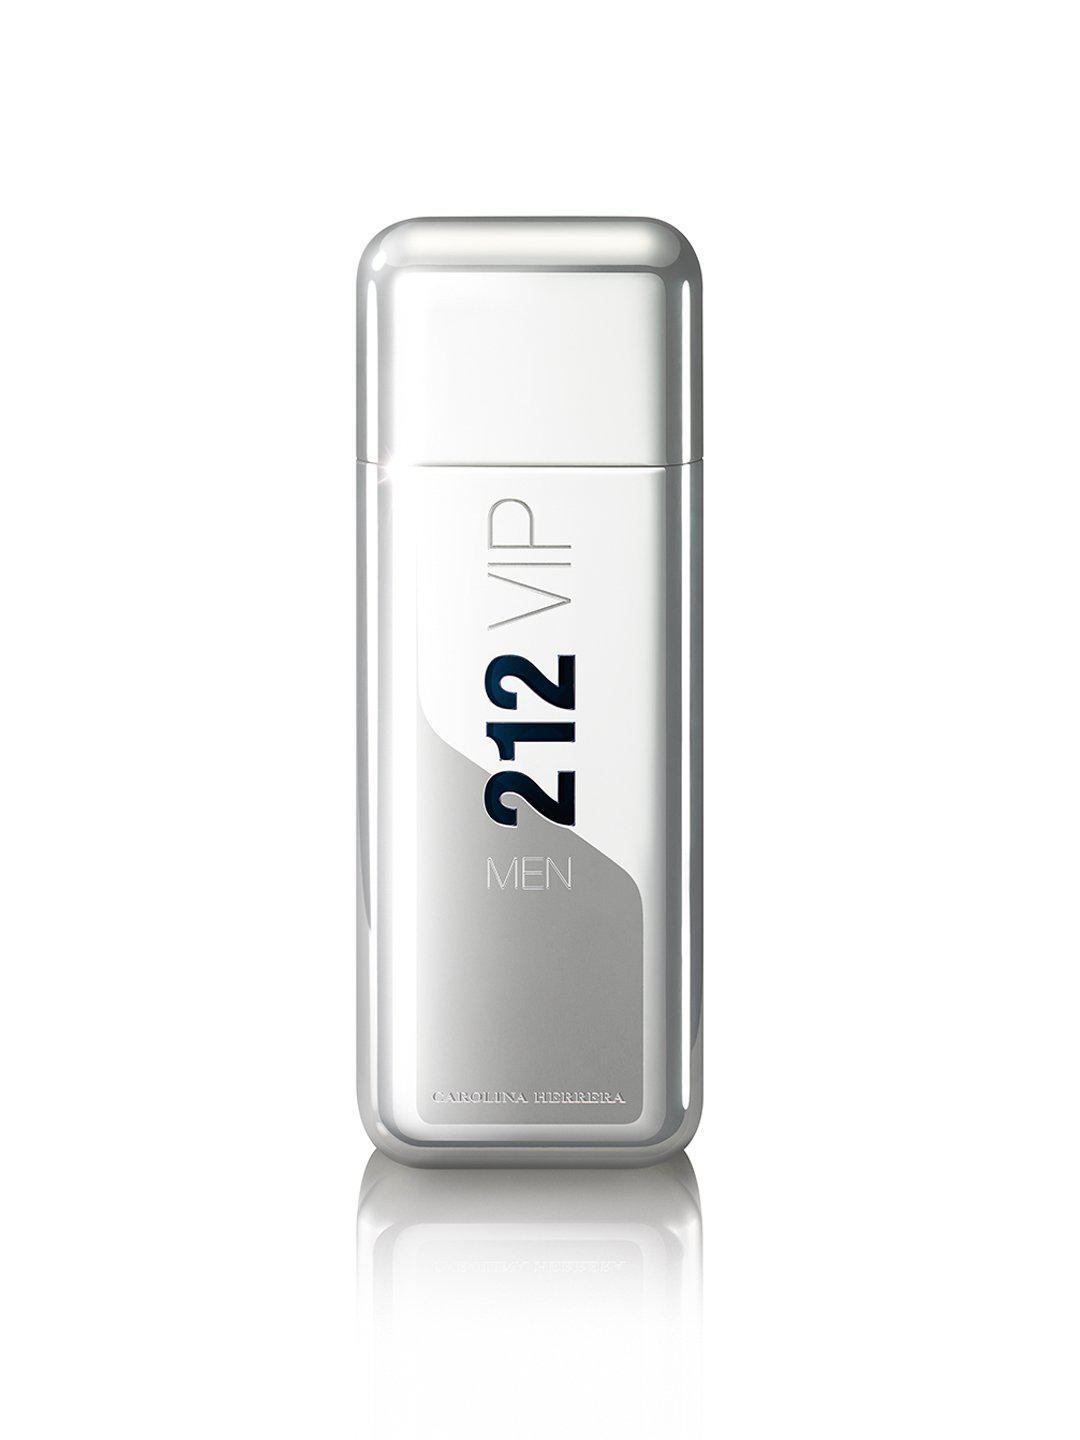 Carolina Herrera 212 Vip Men Eau de Toilette Spray 100ml